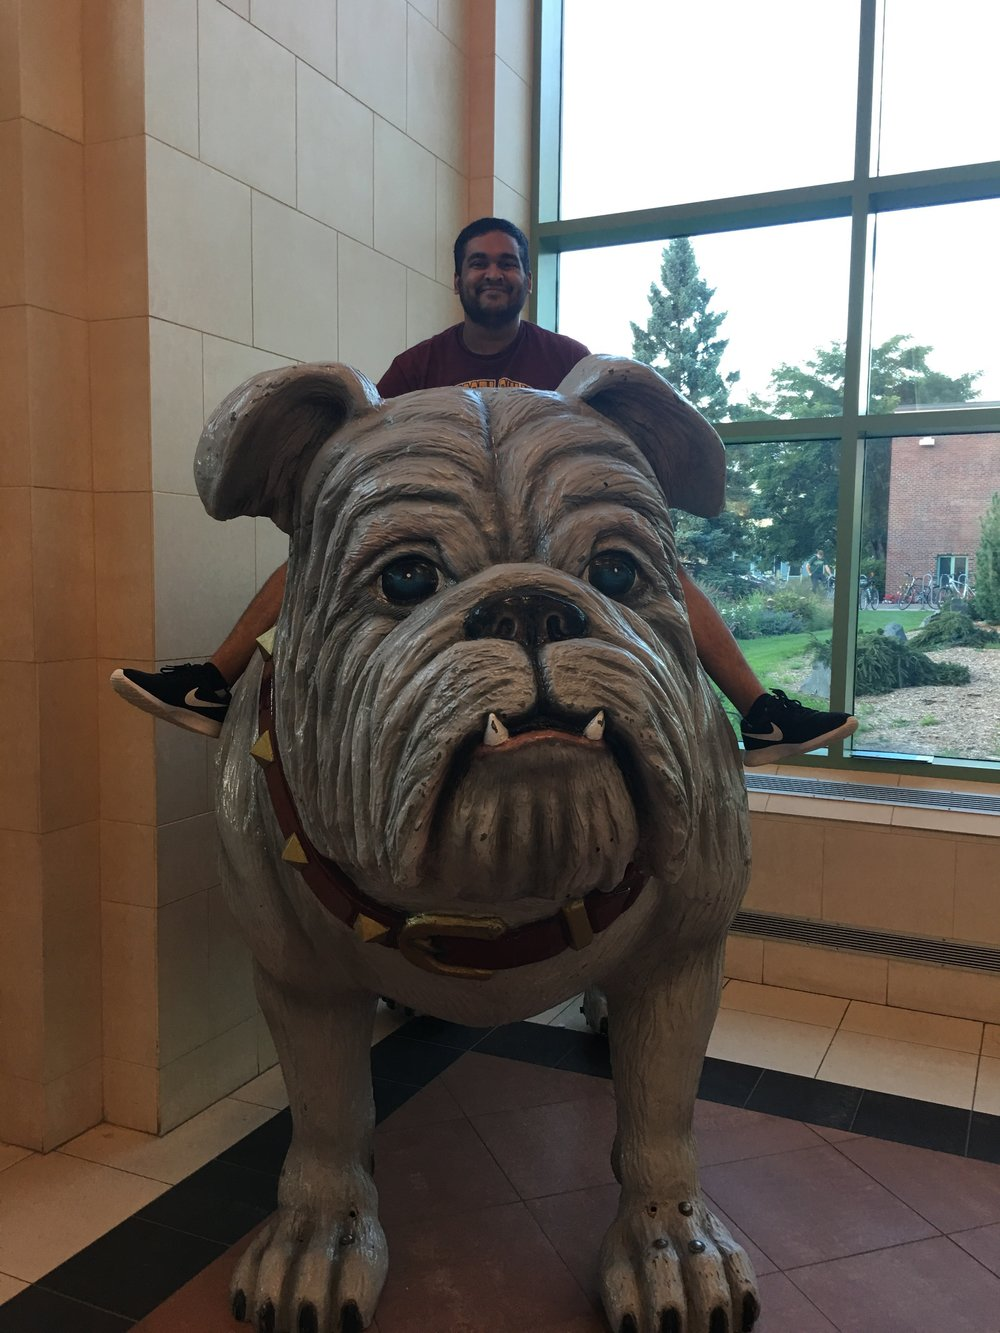 Bhakta showing his bulldog spirit - Credit: Isaac Wolf